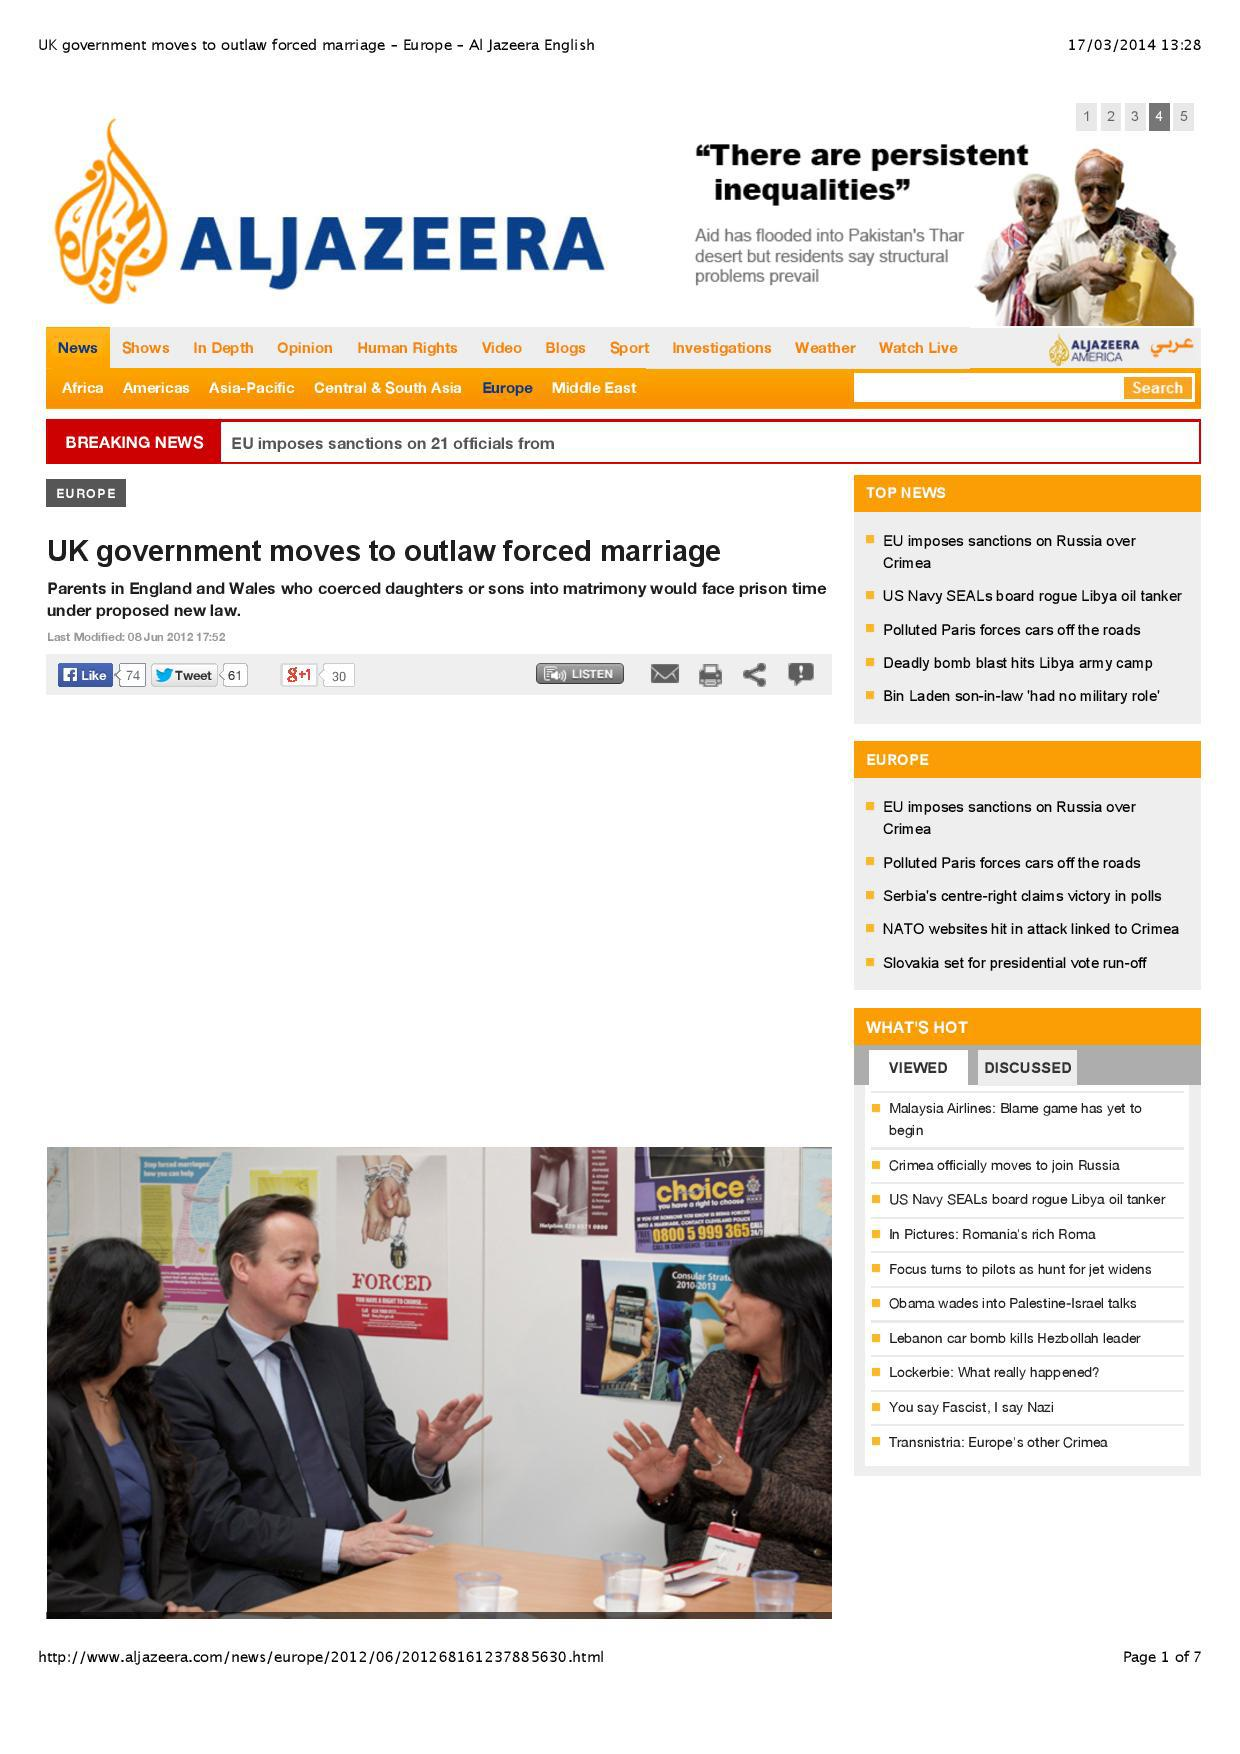 uk-government-moves-to-outlaw-forced-marriage-europe-al-jazeera-english-page-001